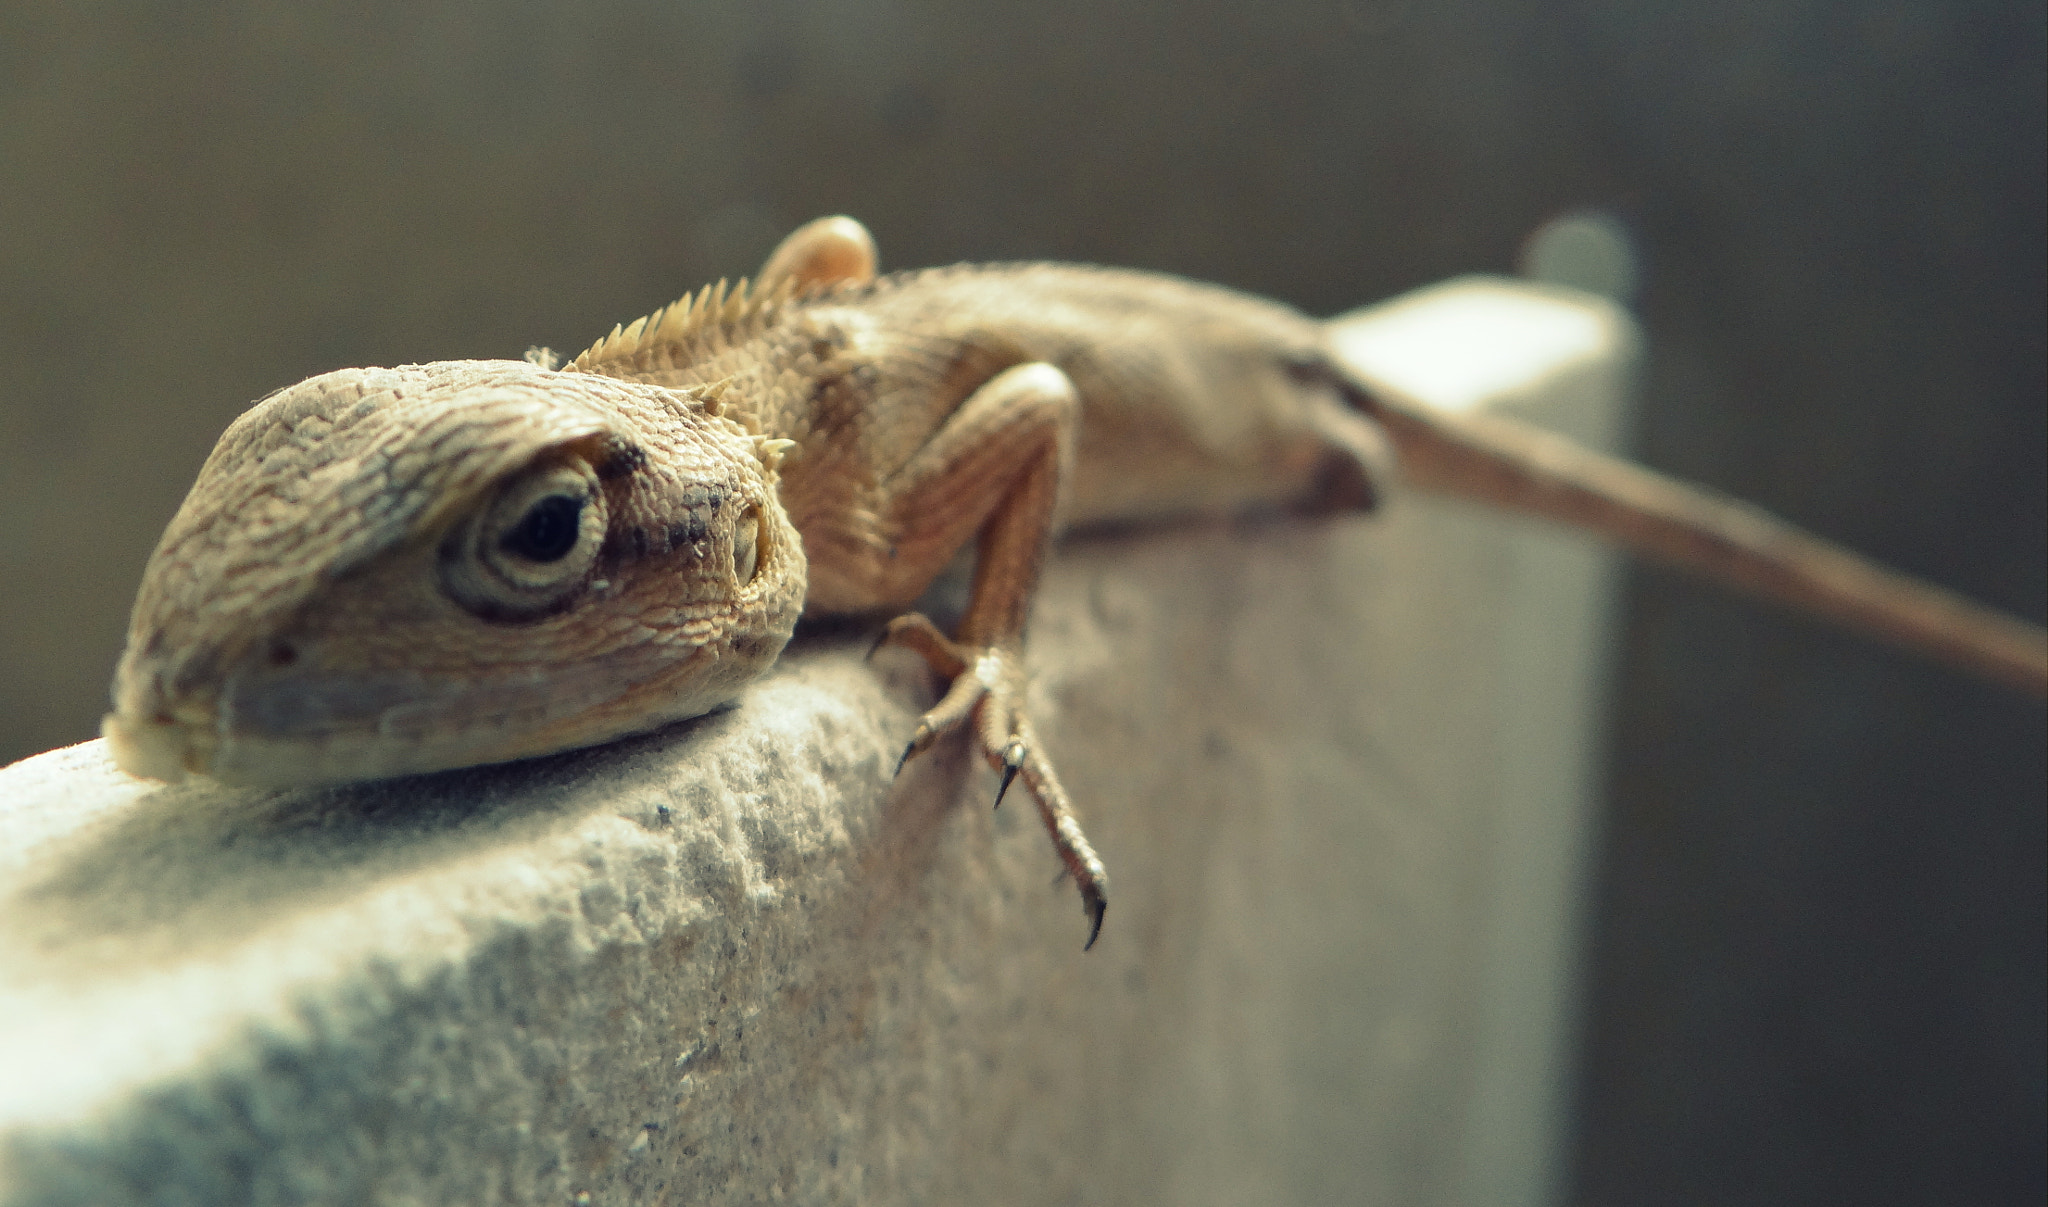 Photograph Chameleon at rest ! by Gaurav Chaudhary on 500px